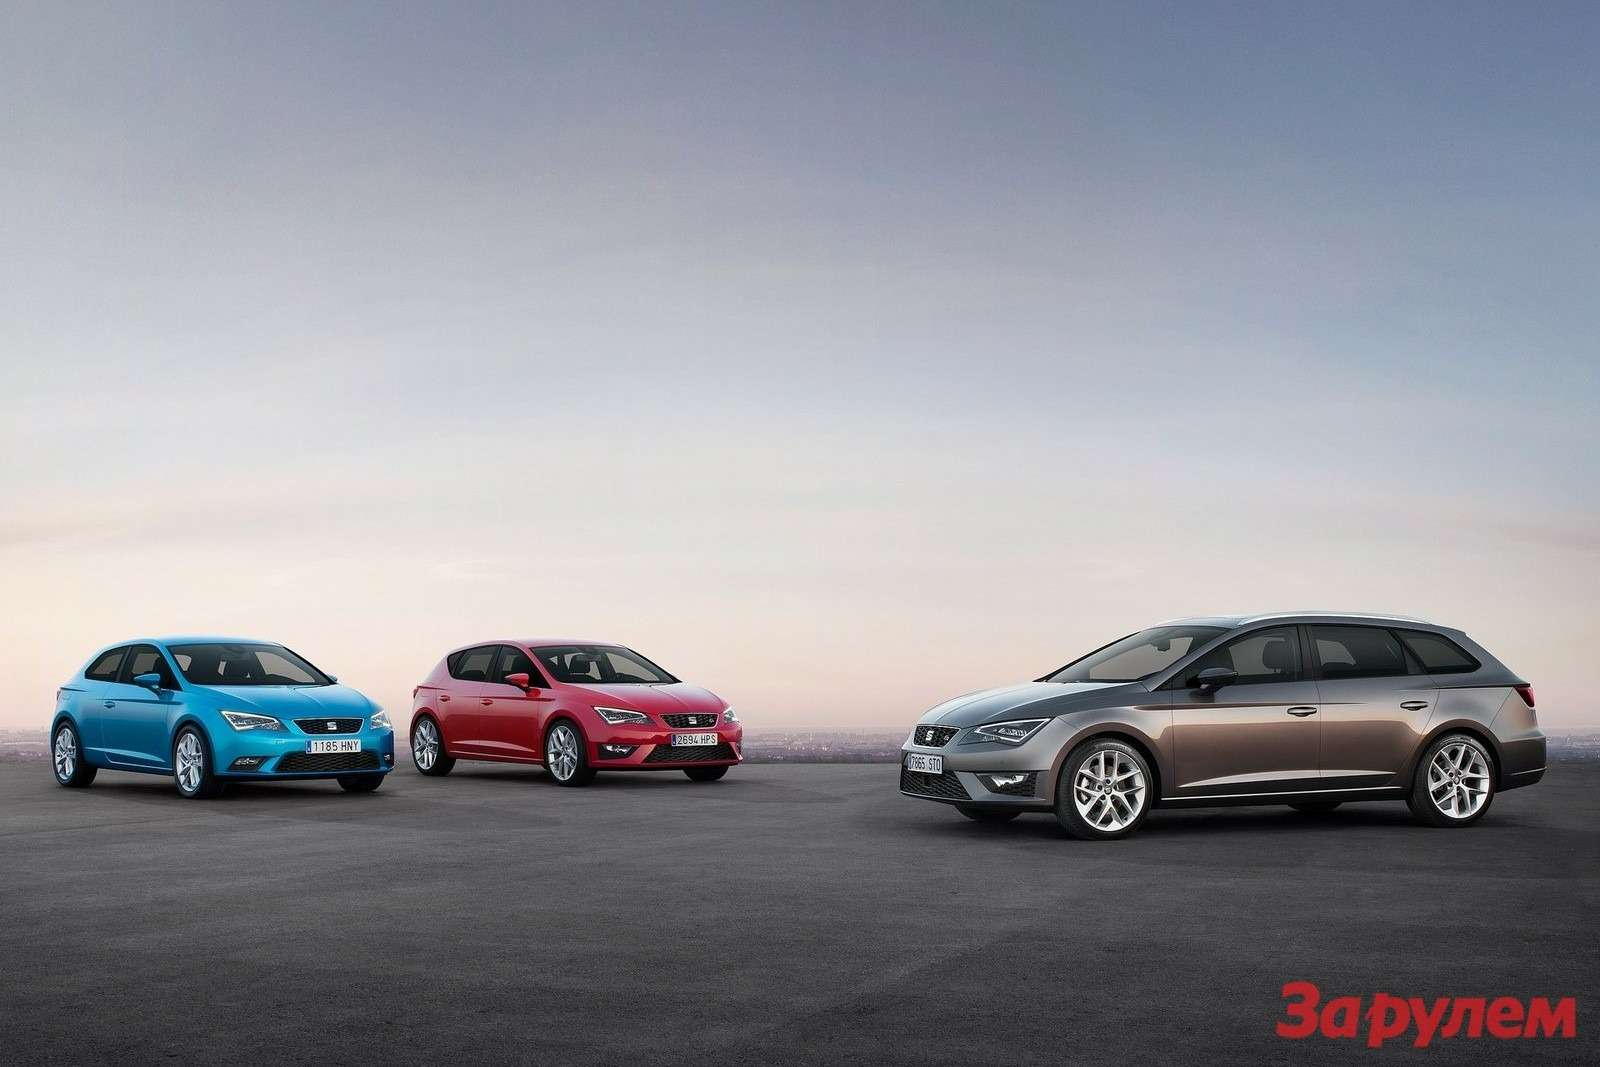 Seat Leon ST 2014 1600x1200 wallpaper 09